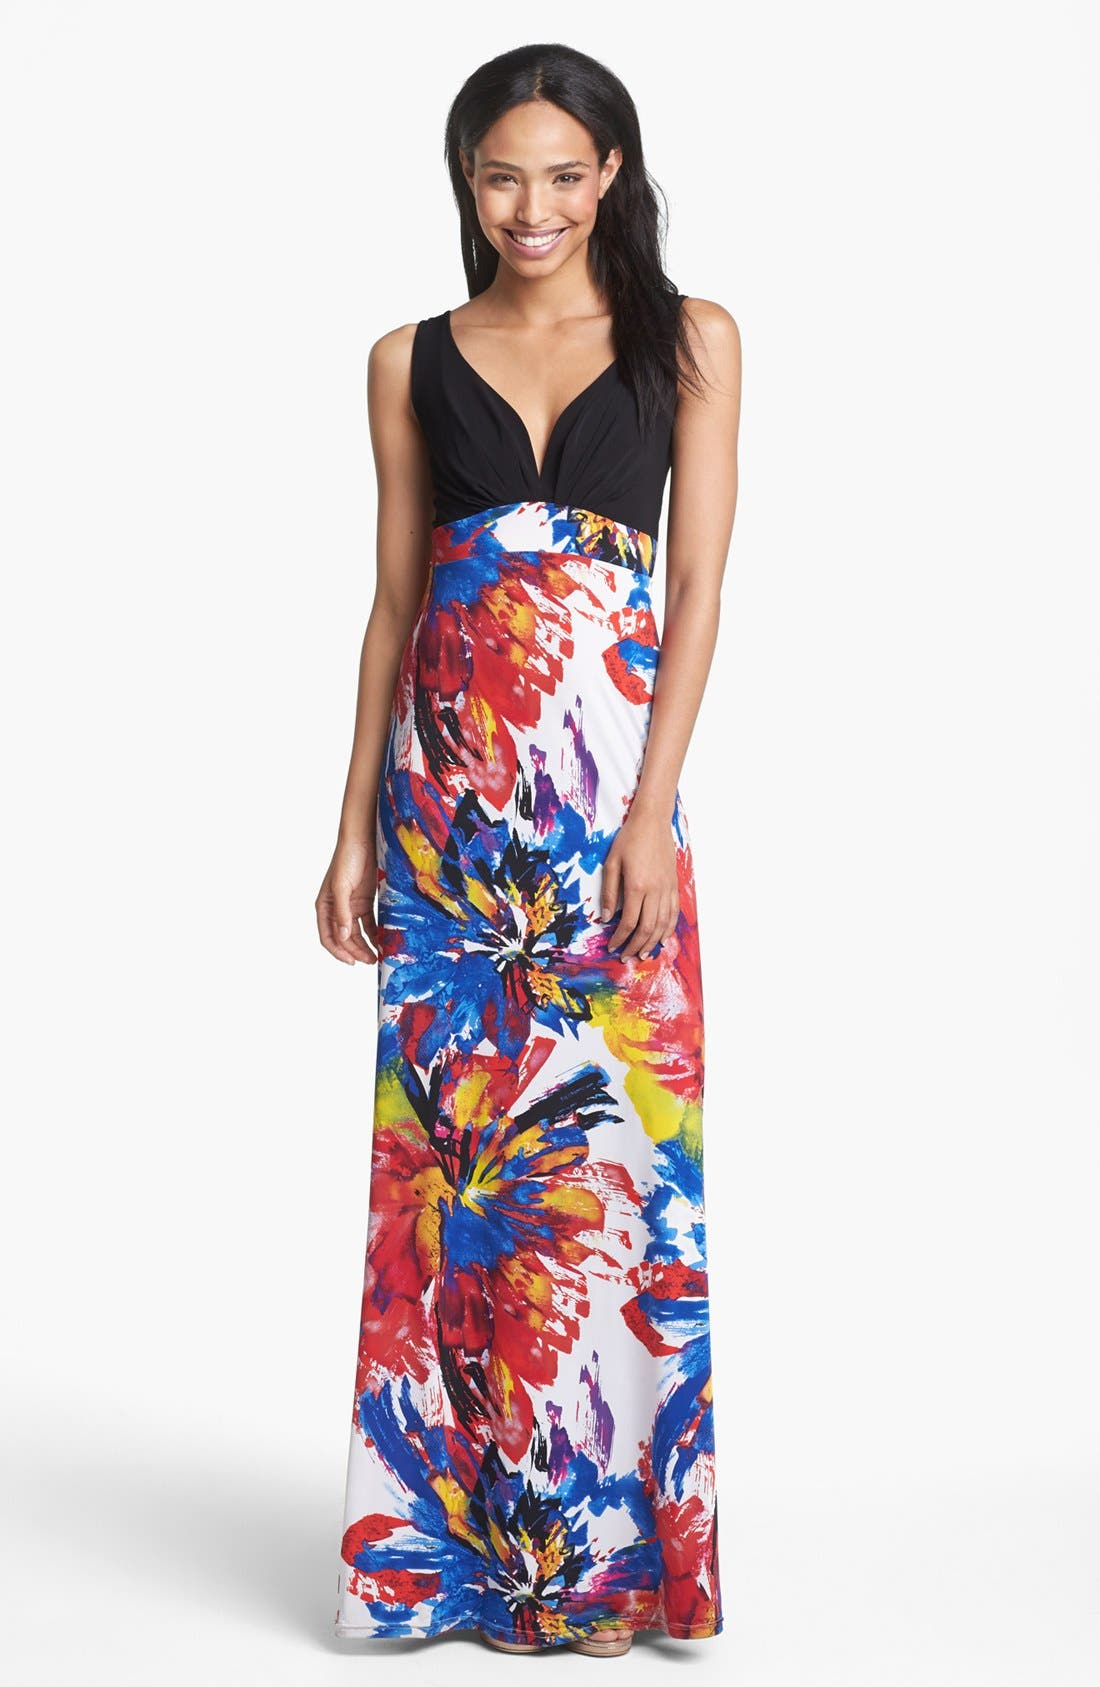 Alternate Image 1 Selected - Abi Ferrin 'India' Print Sleeveless Maxi Dress